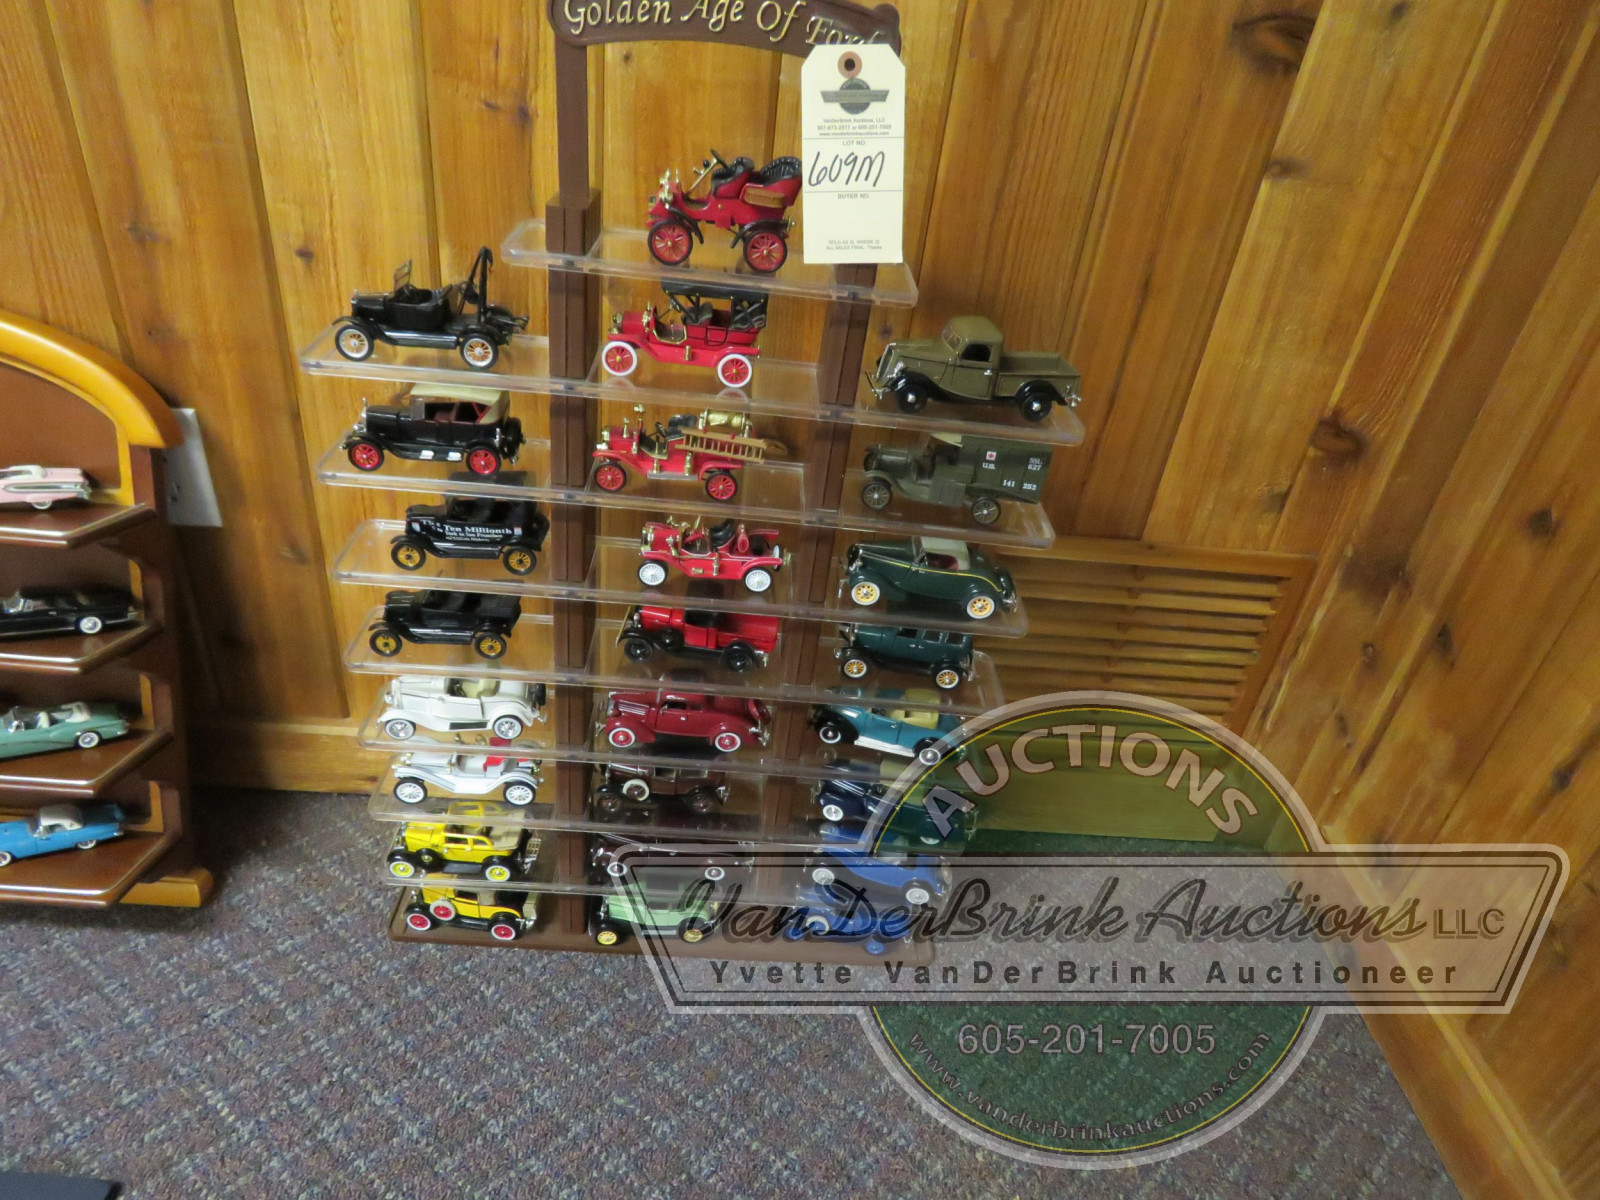 Age of Ford Franklin Mint Display - Image 1